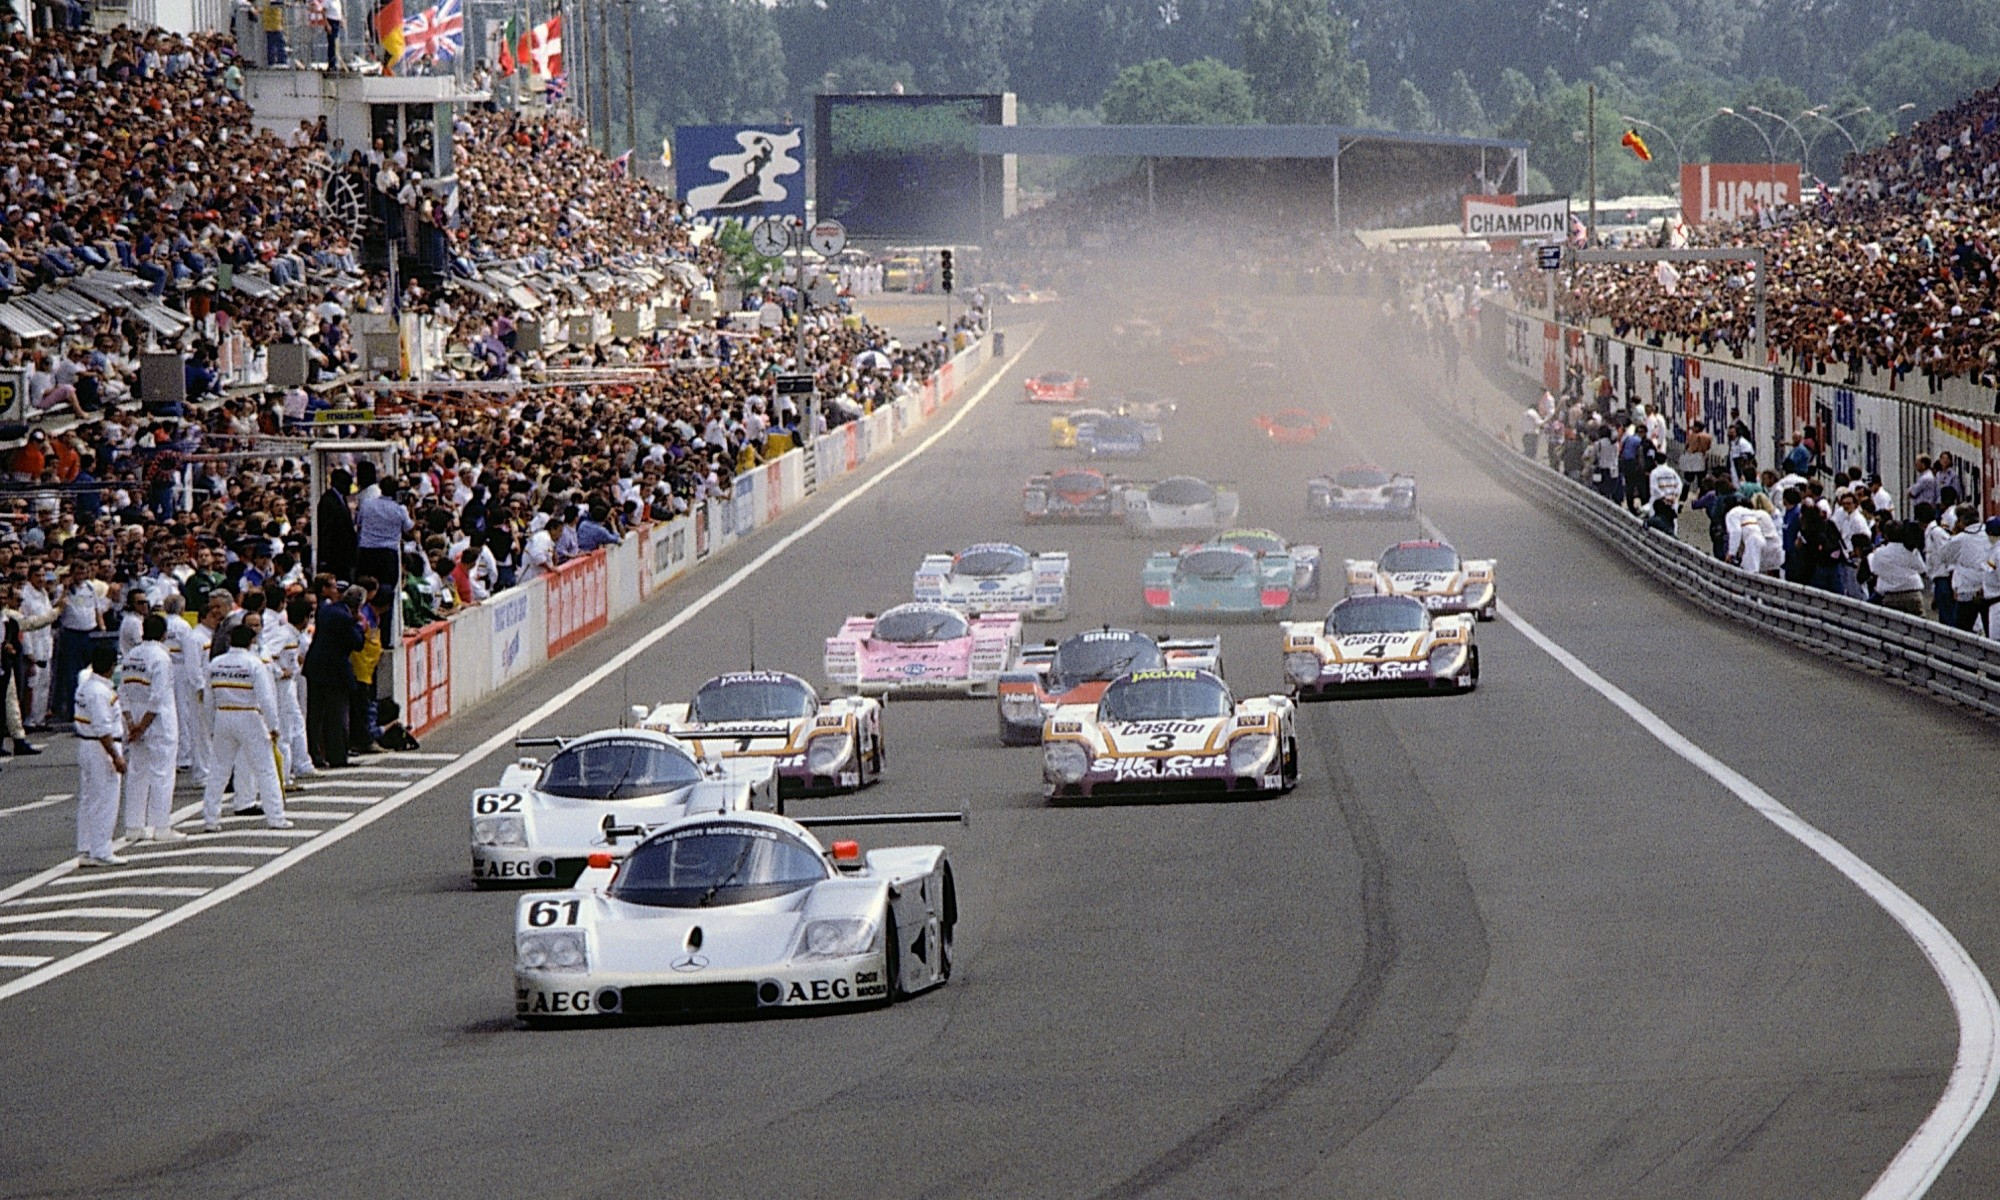 1989 Le Mans Sauber-Mercedes C9s lead the field